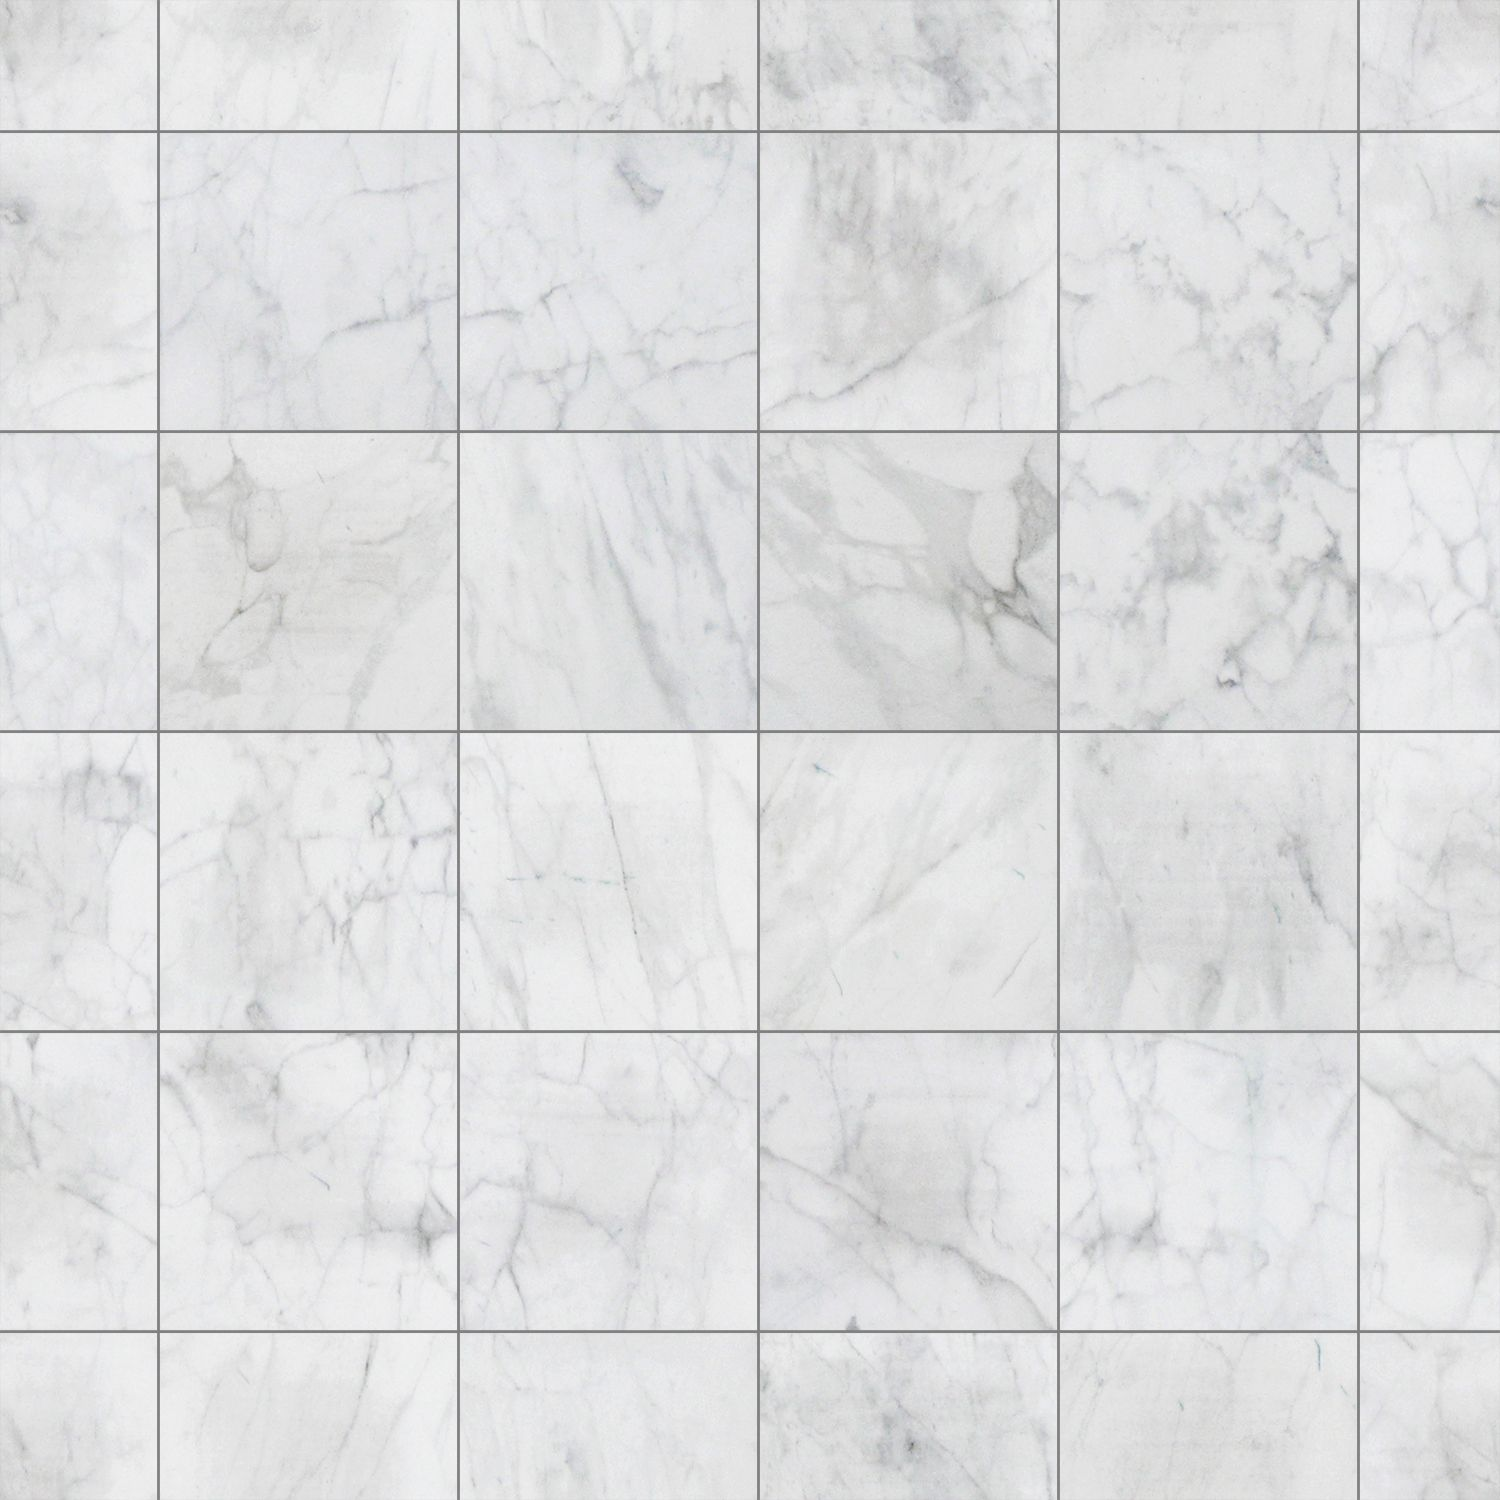 White marble texture background download photo white for White marble floor designs